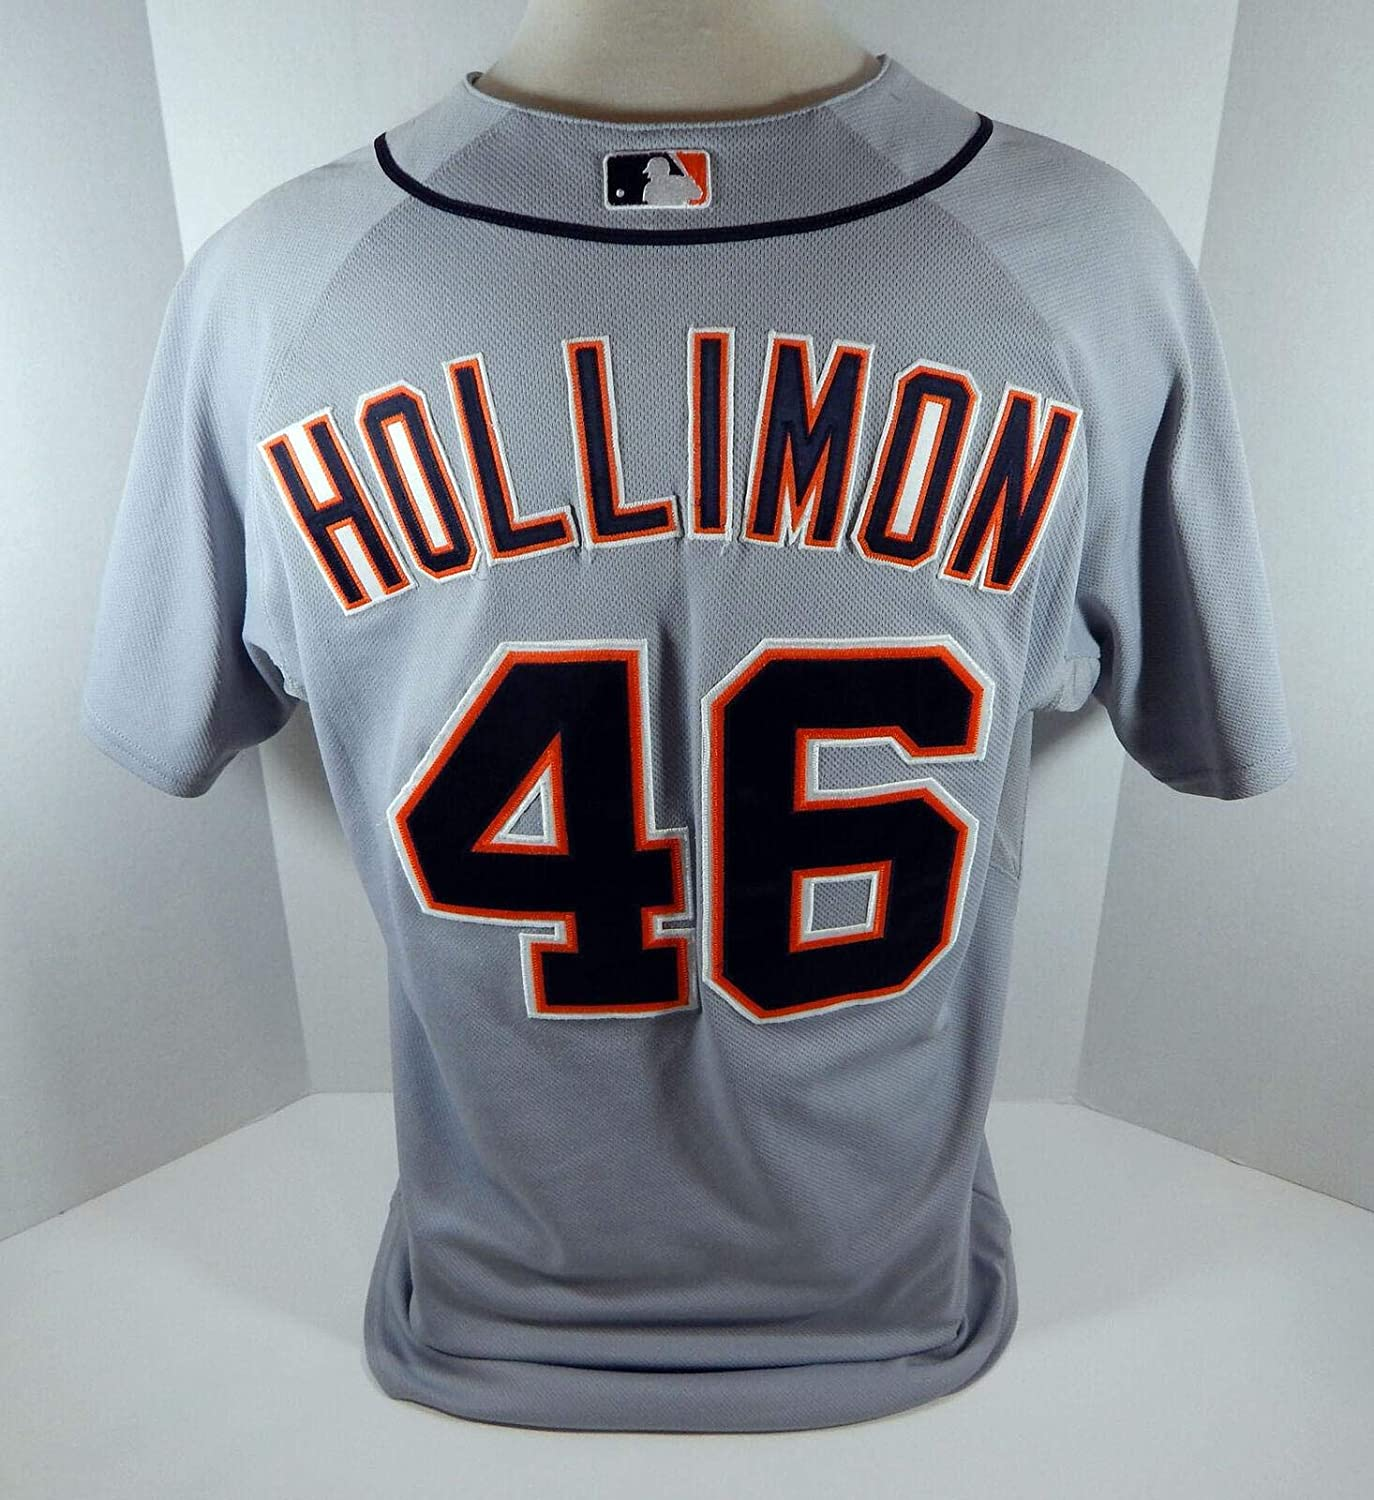 2008 Tigers Mike Holliman #46 Game Used Grey Jersey - Game Used MLB Jerseys